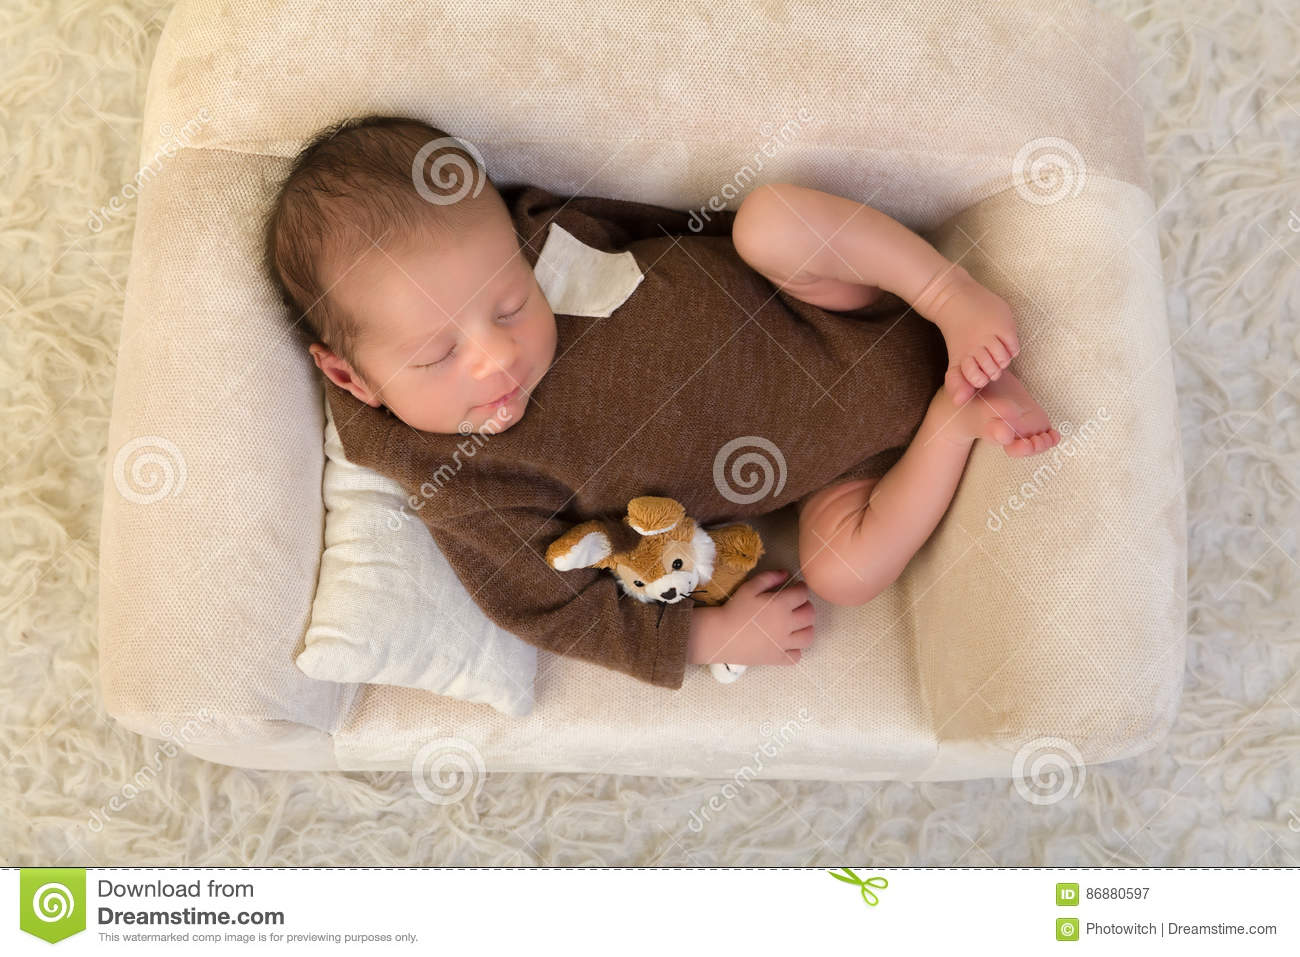 Newborn Baby Sleeping On Soft Couch Stock Photo Image